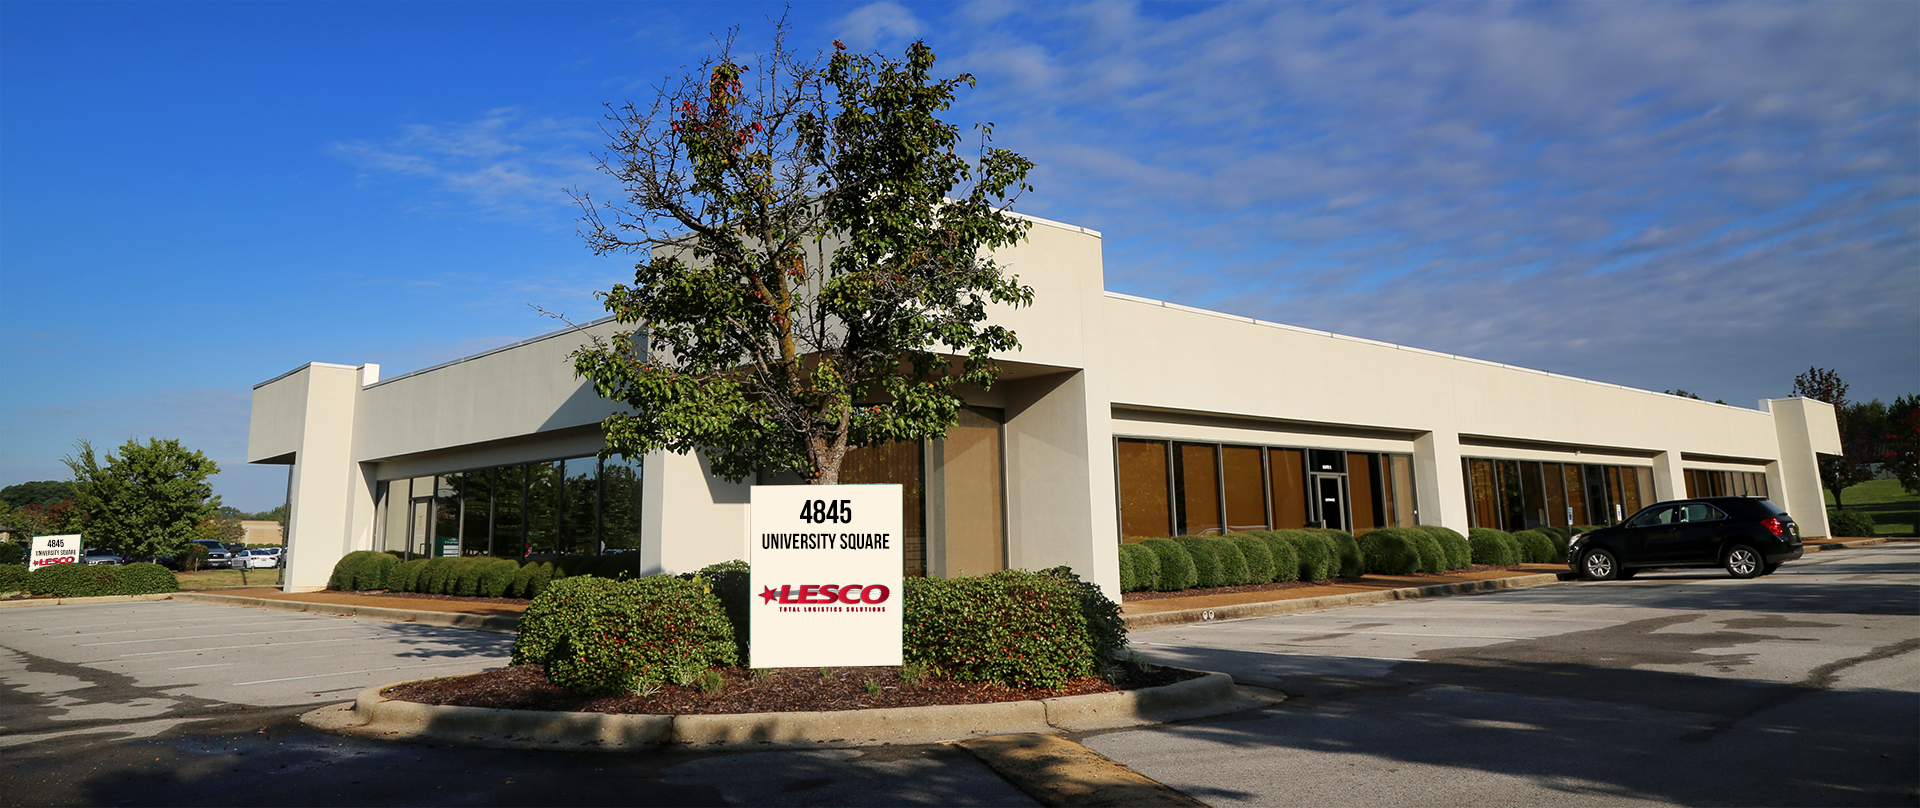 LESCO BUILDING_OPT.png